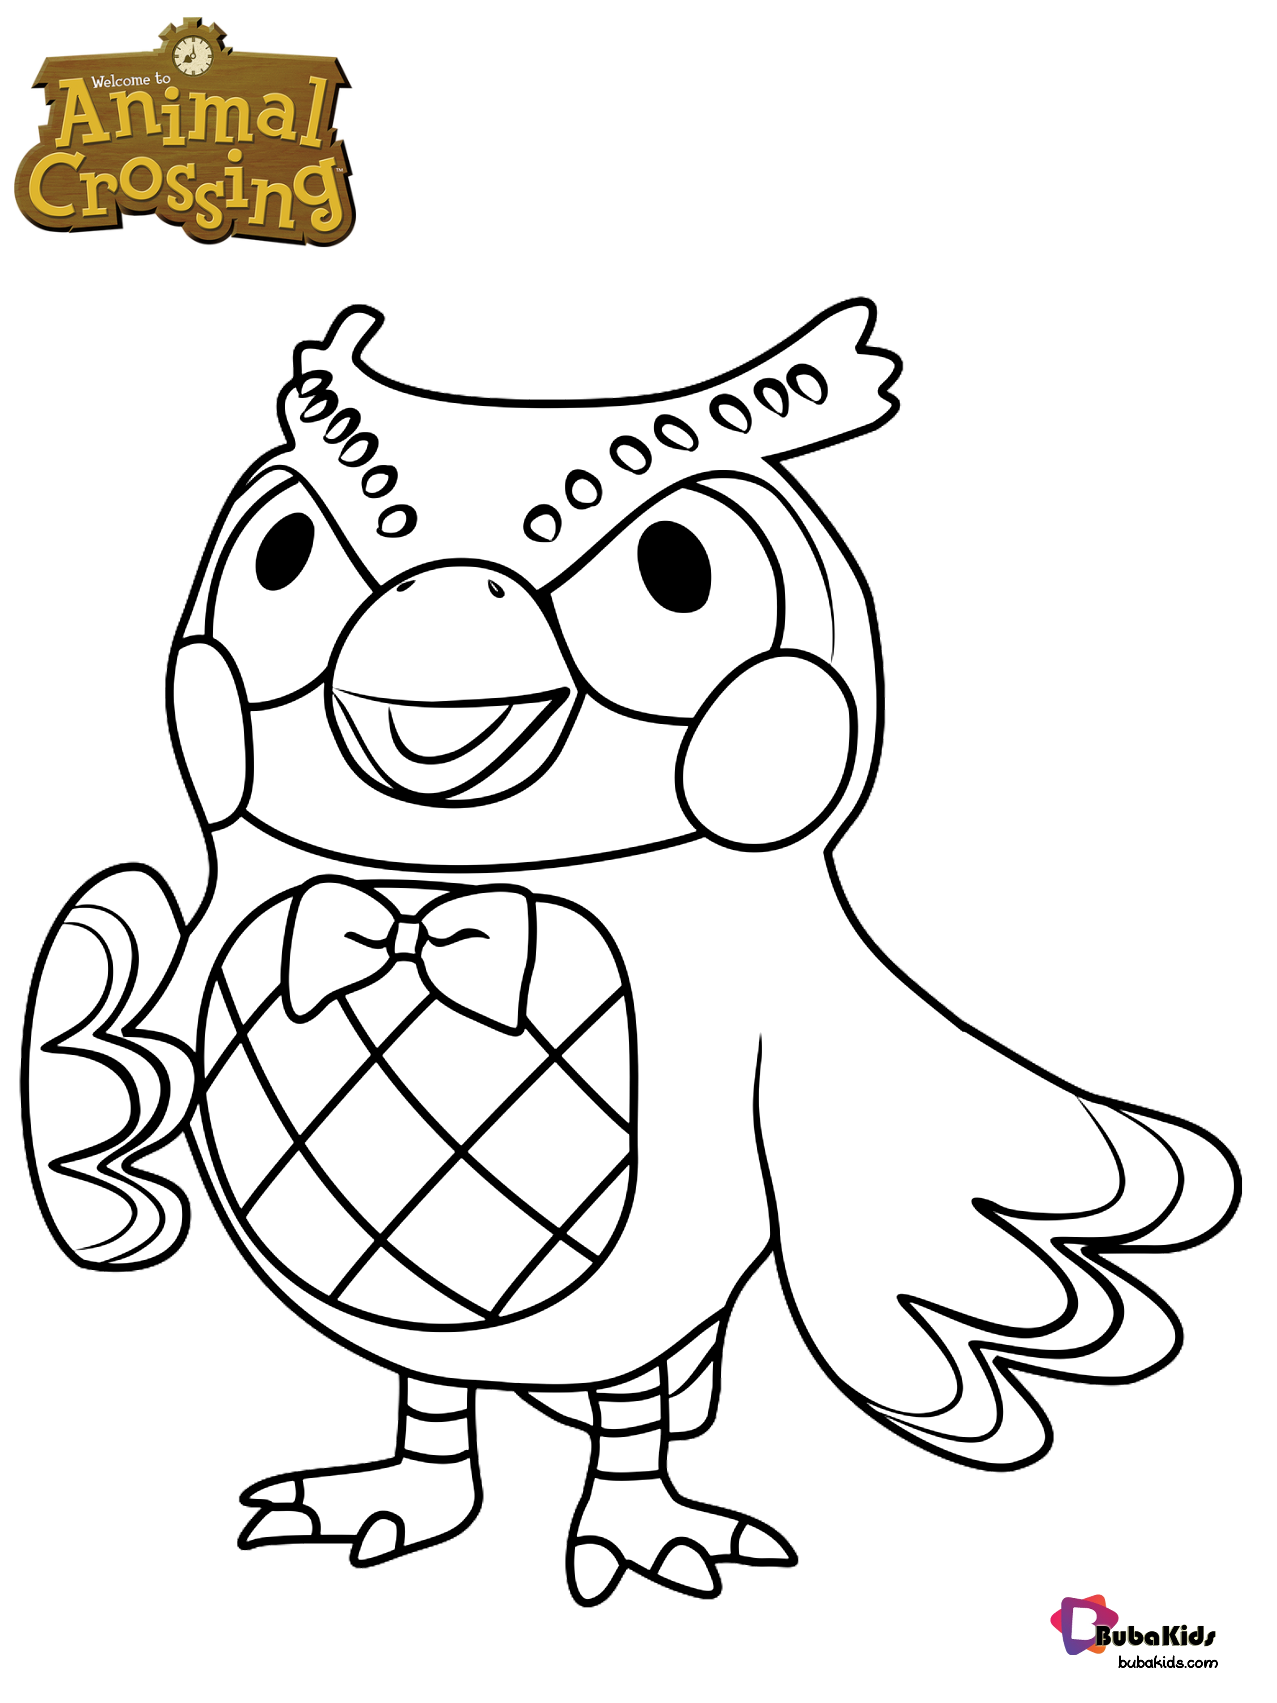 40 Creative Forest Tattoo Designs And Ideas Page 2 Of 4 Tattooador In 2020 Owl Pet Animal Crossing Characters Animal Crossing